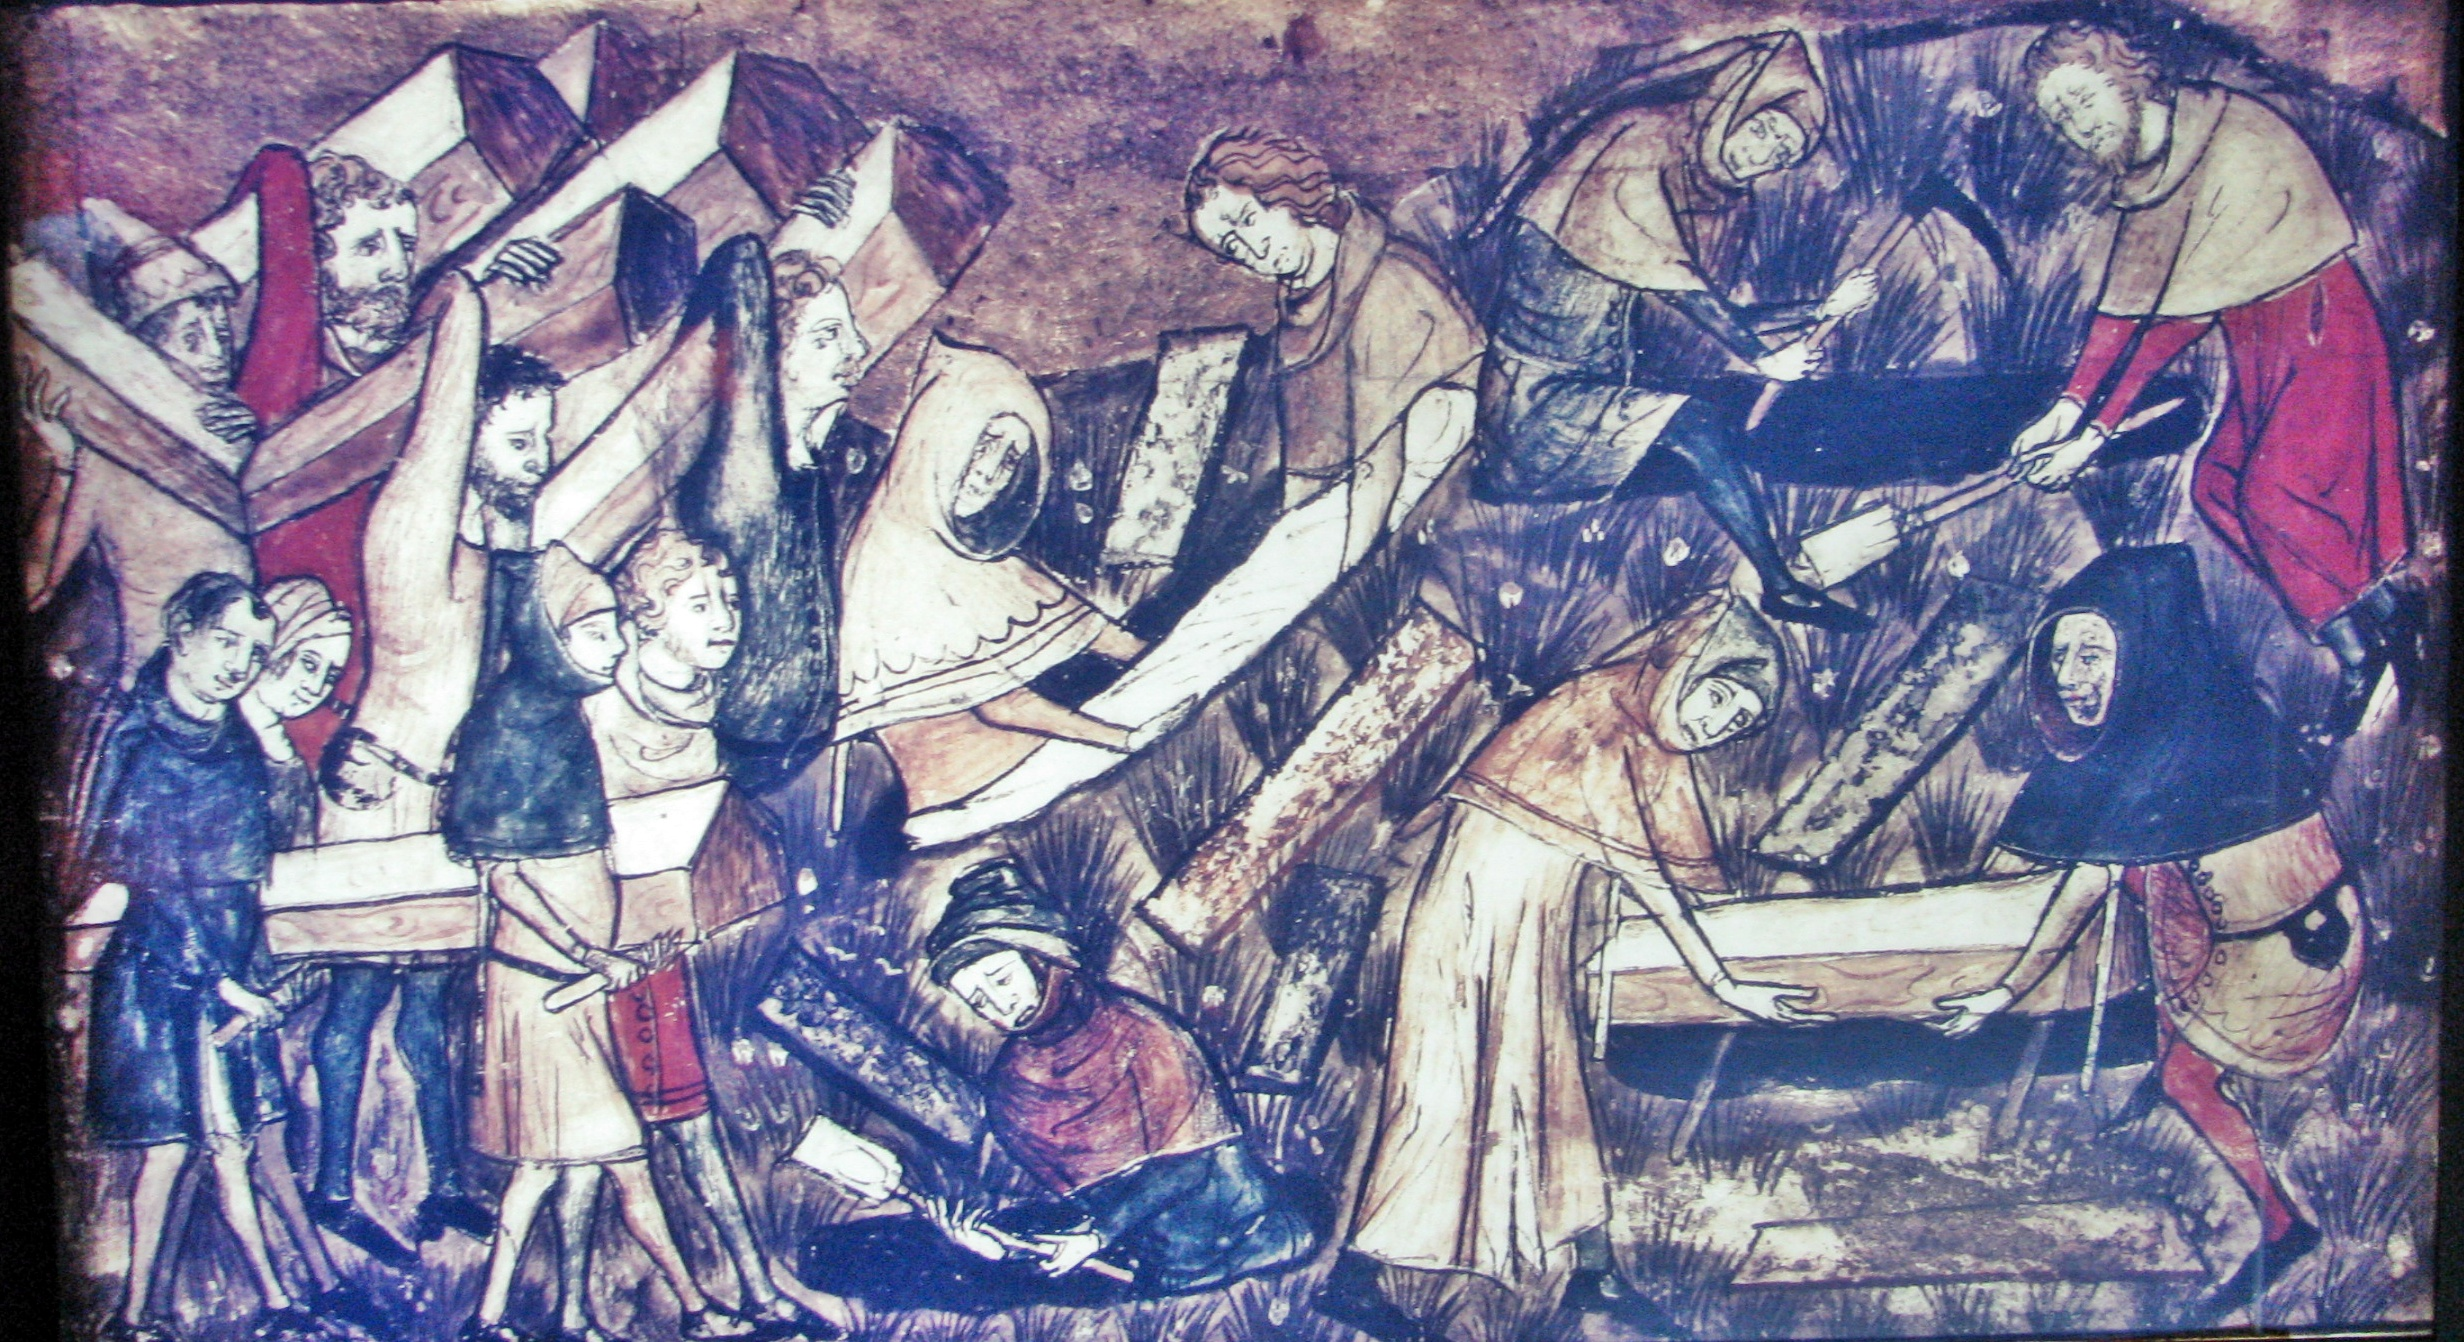 File:Blackdeath, tourmai.jpg - Wikimedia Commons